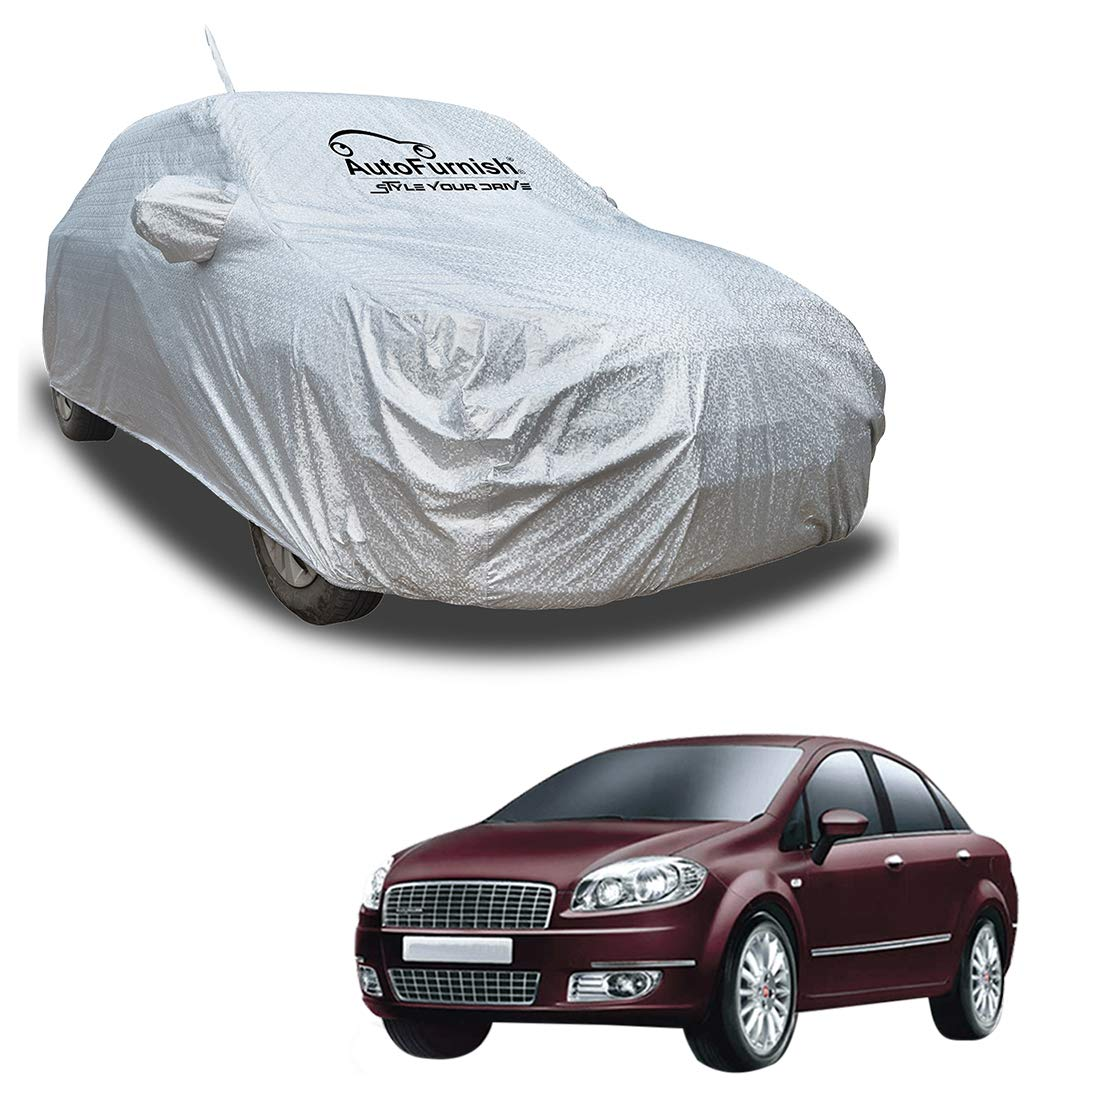 JAGUAR XF ALL YEARS PREMIUM HD FULLY WATERPROOF CAR COVER COTTON LINED